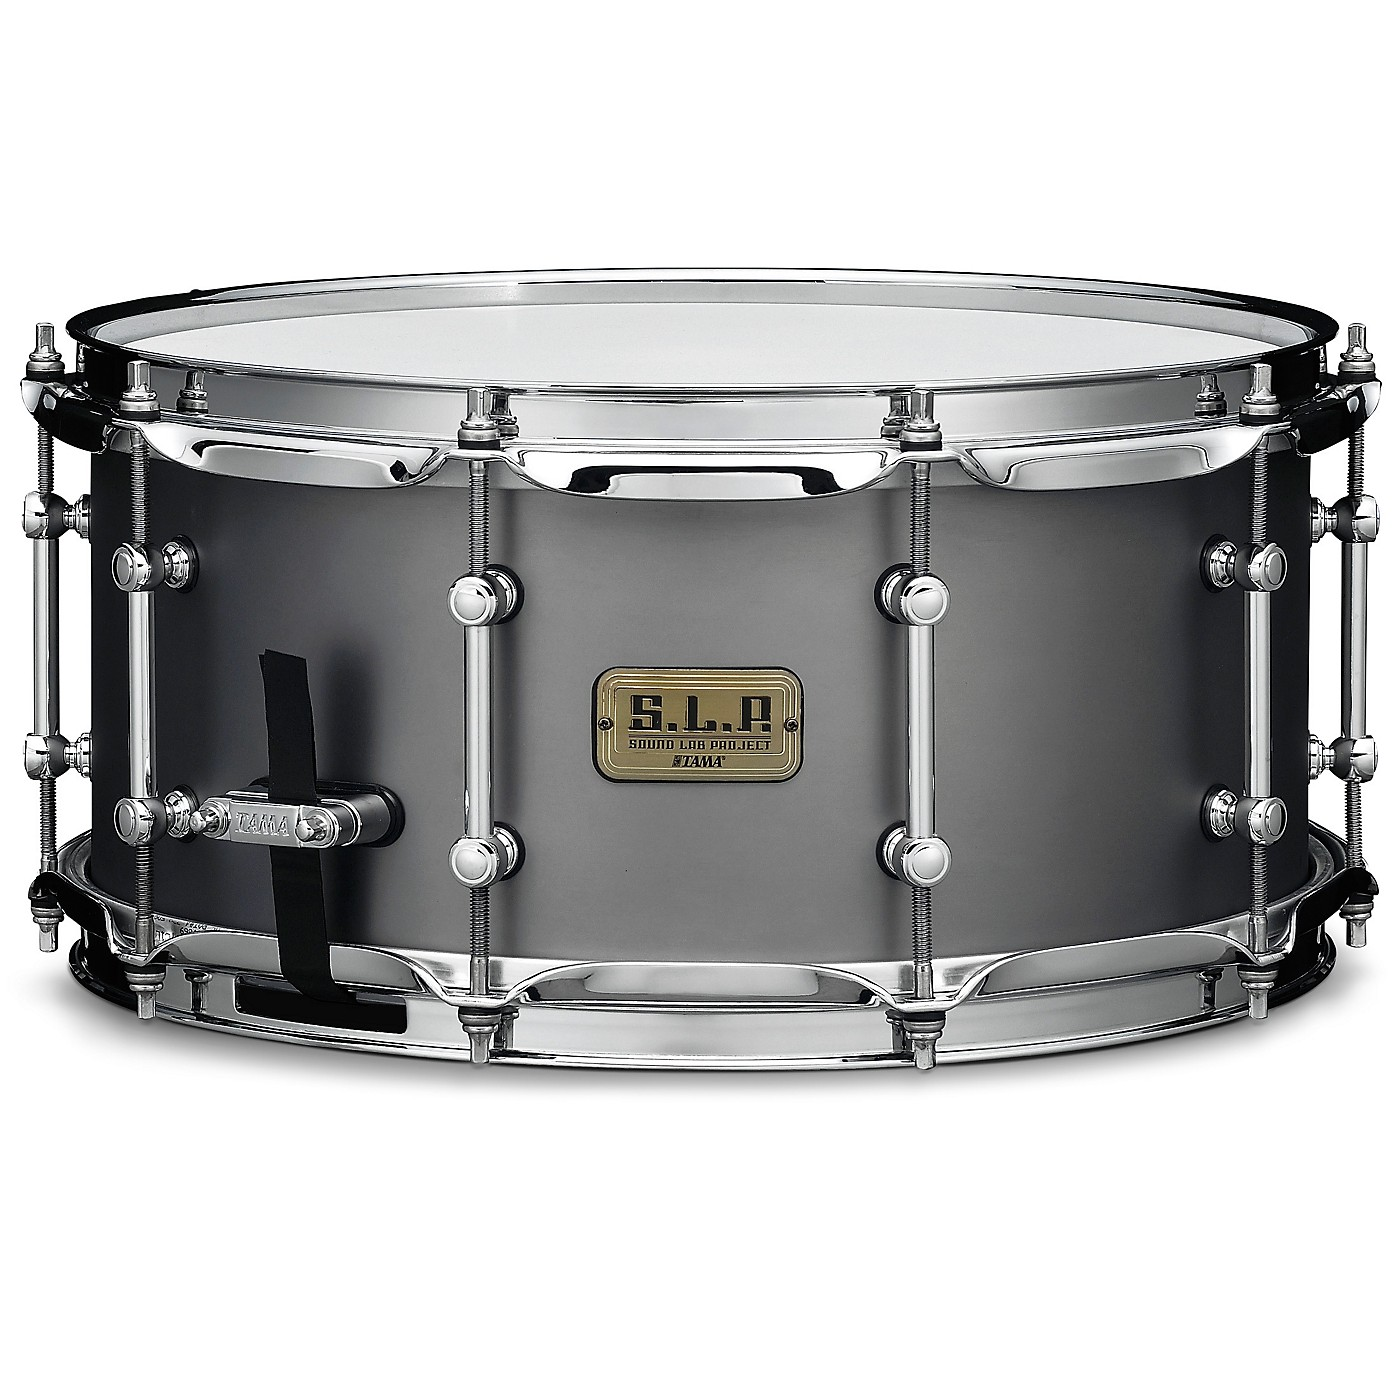 TAMA S.L.P. Sonic Stainless Steel Snare Drum thumbnail